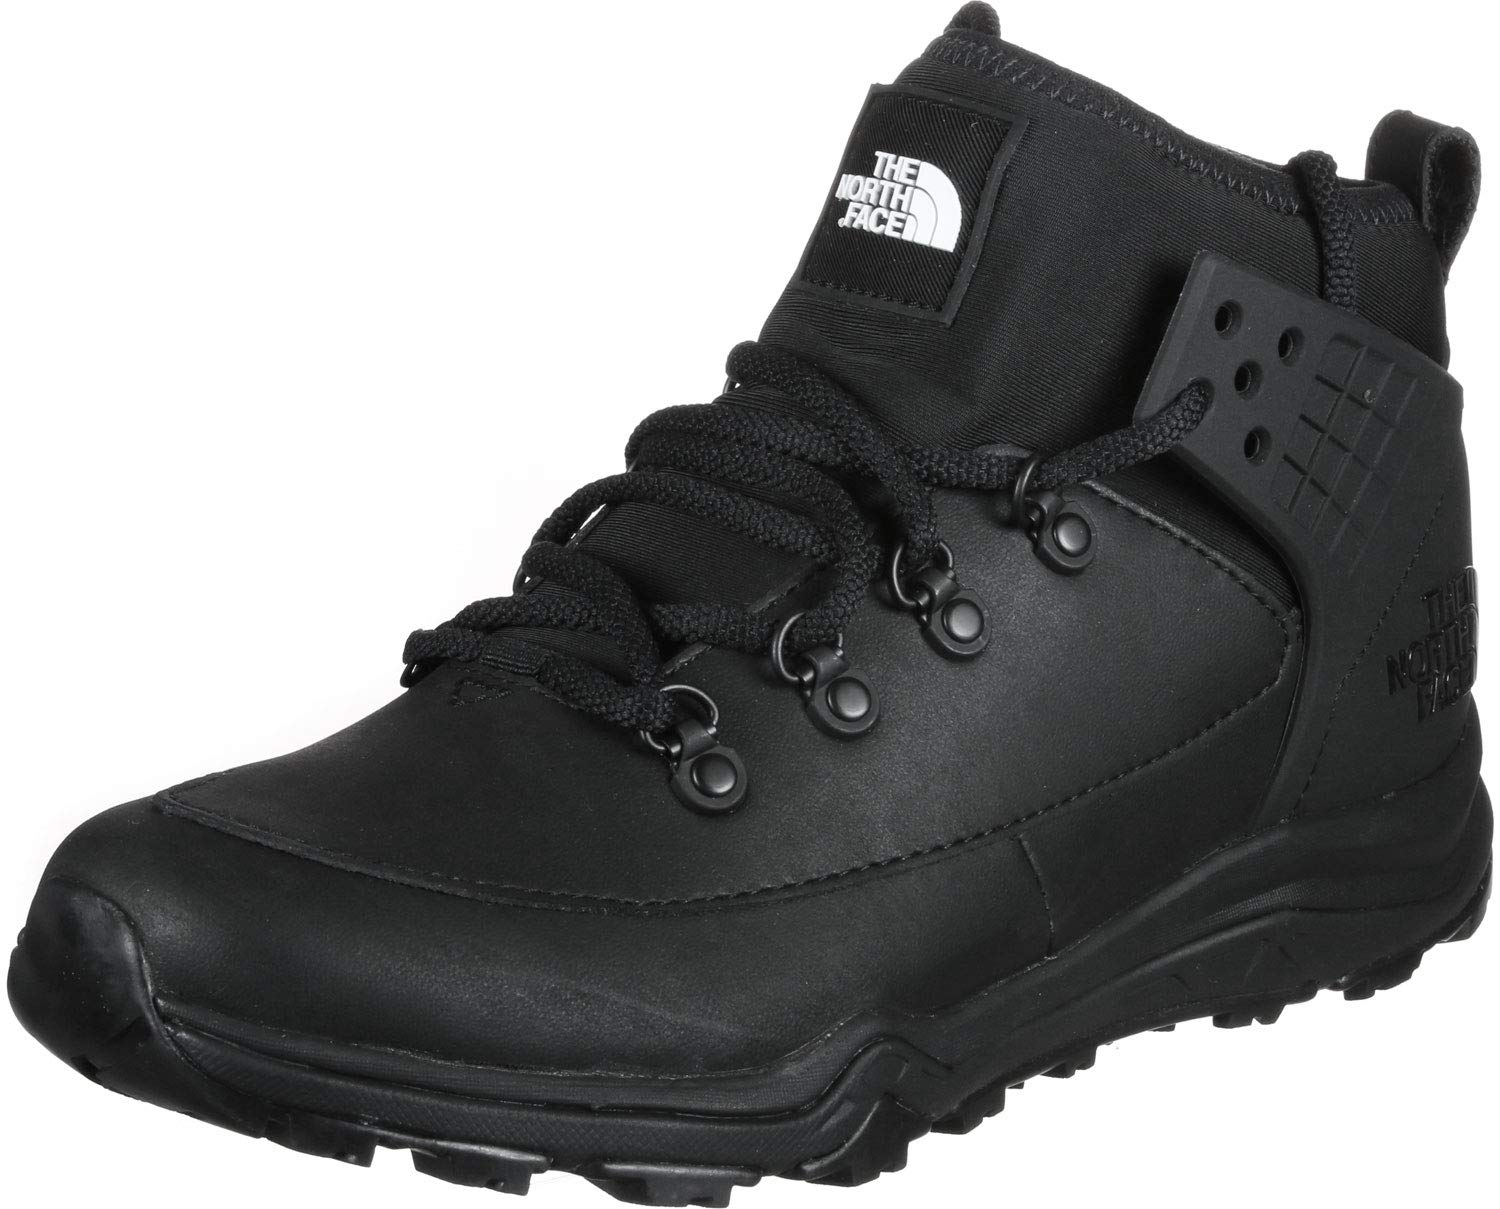 34f83509cee The North Face Dellan Mid hiking shoes: Amazon.co.uk: Sports & Outdoors